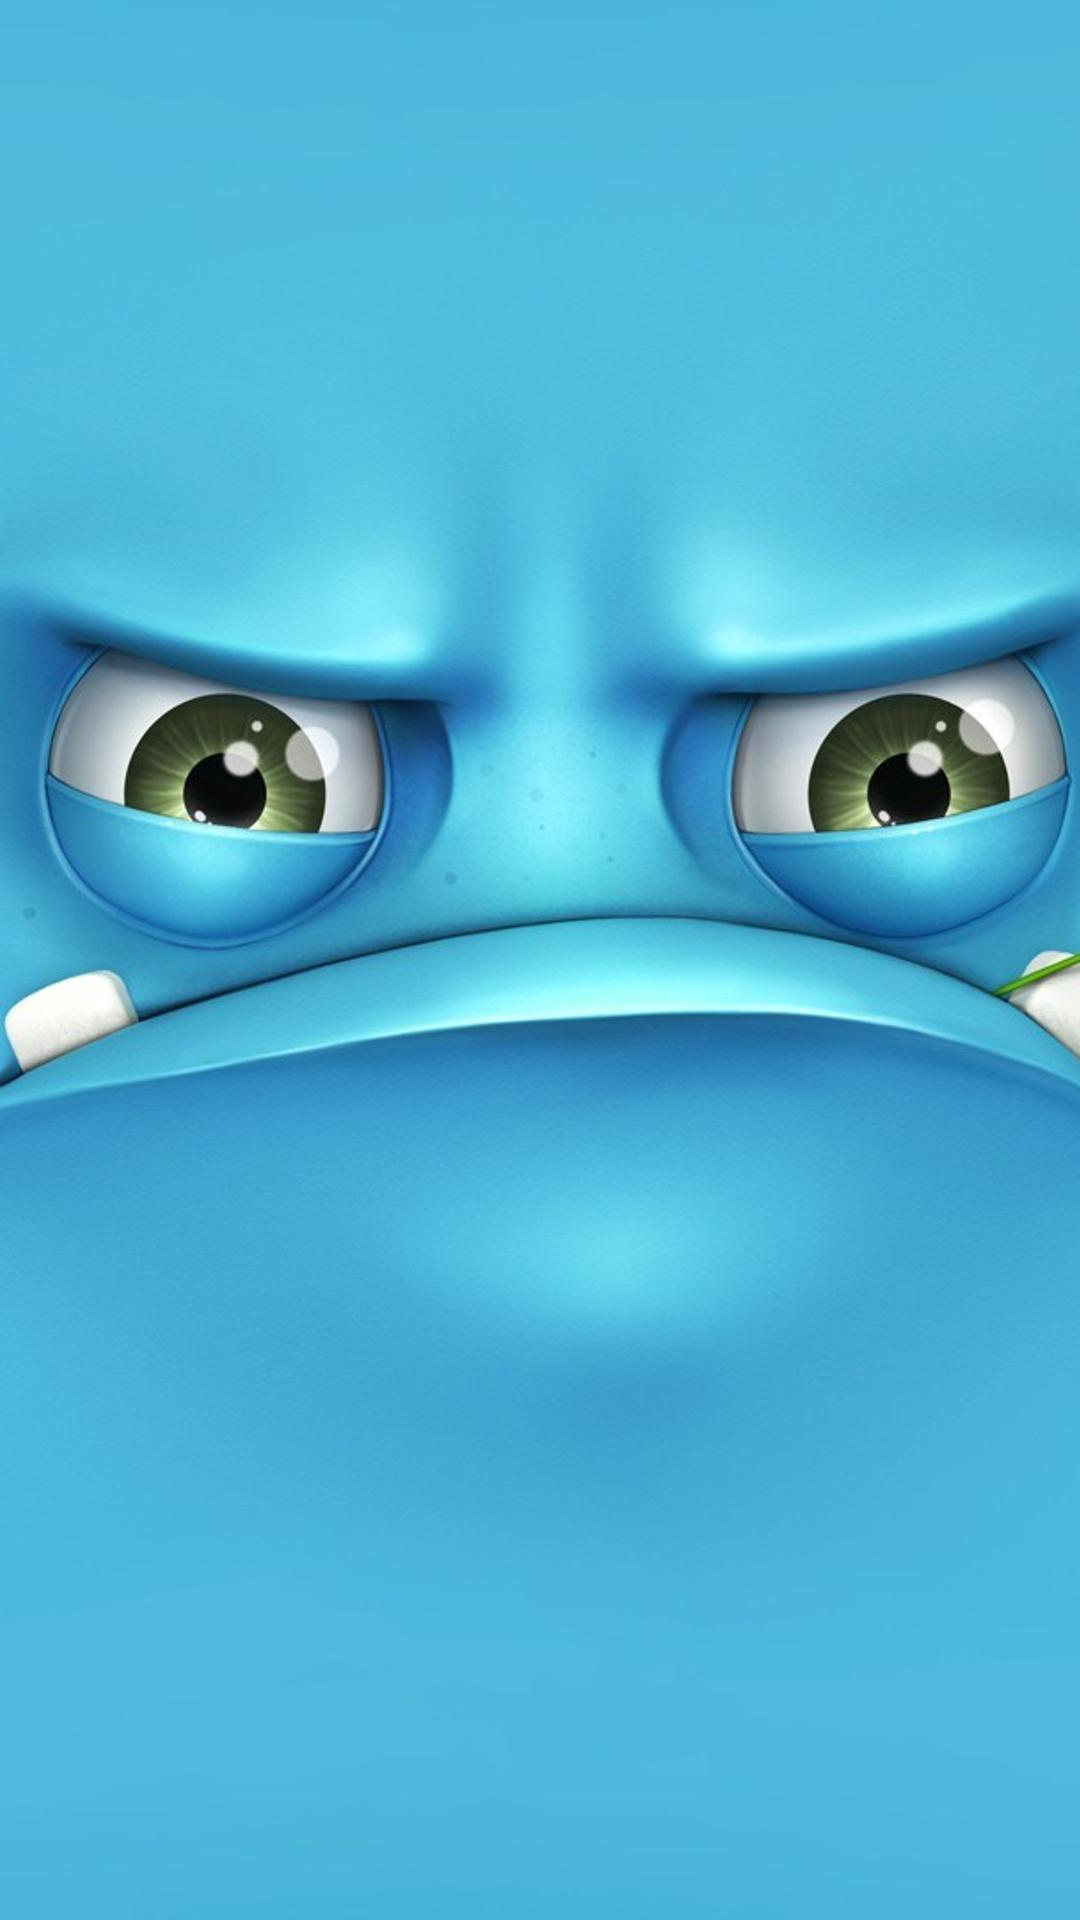 funny blue monster - 3d wallpaper wallpaper download 1080x1920